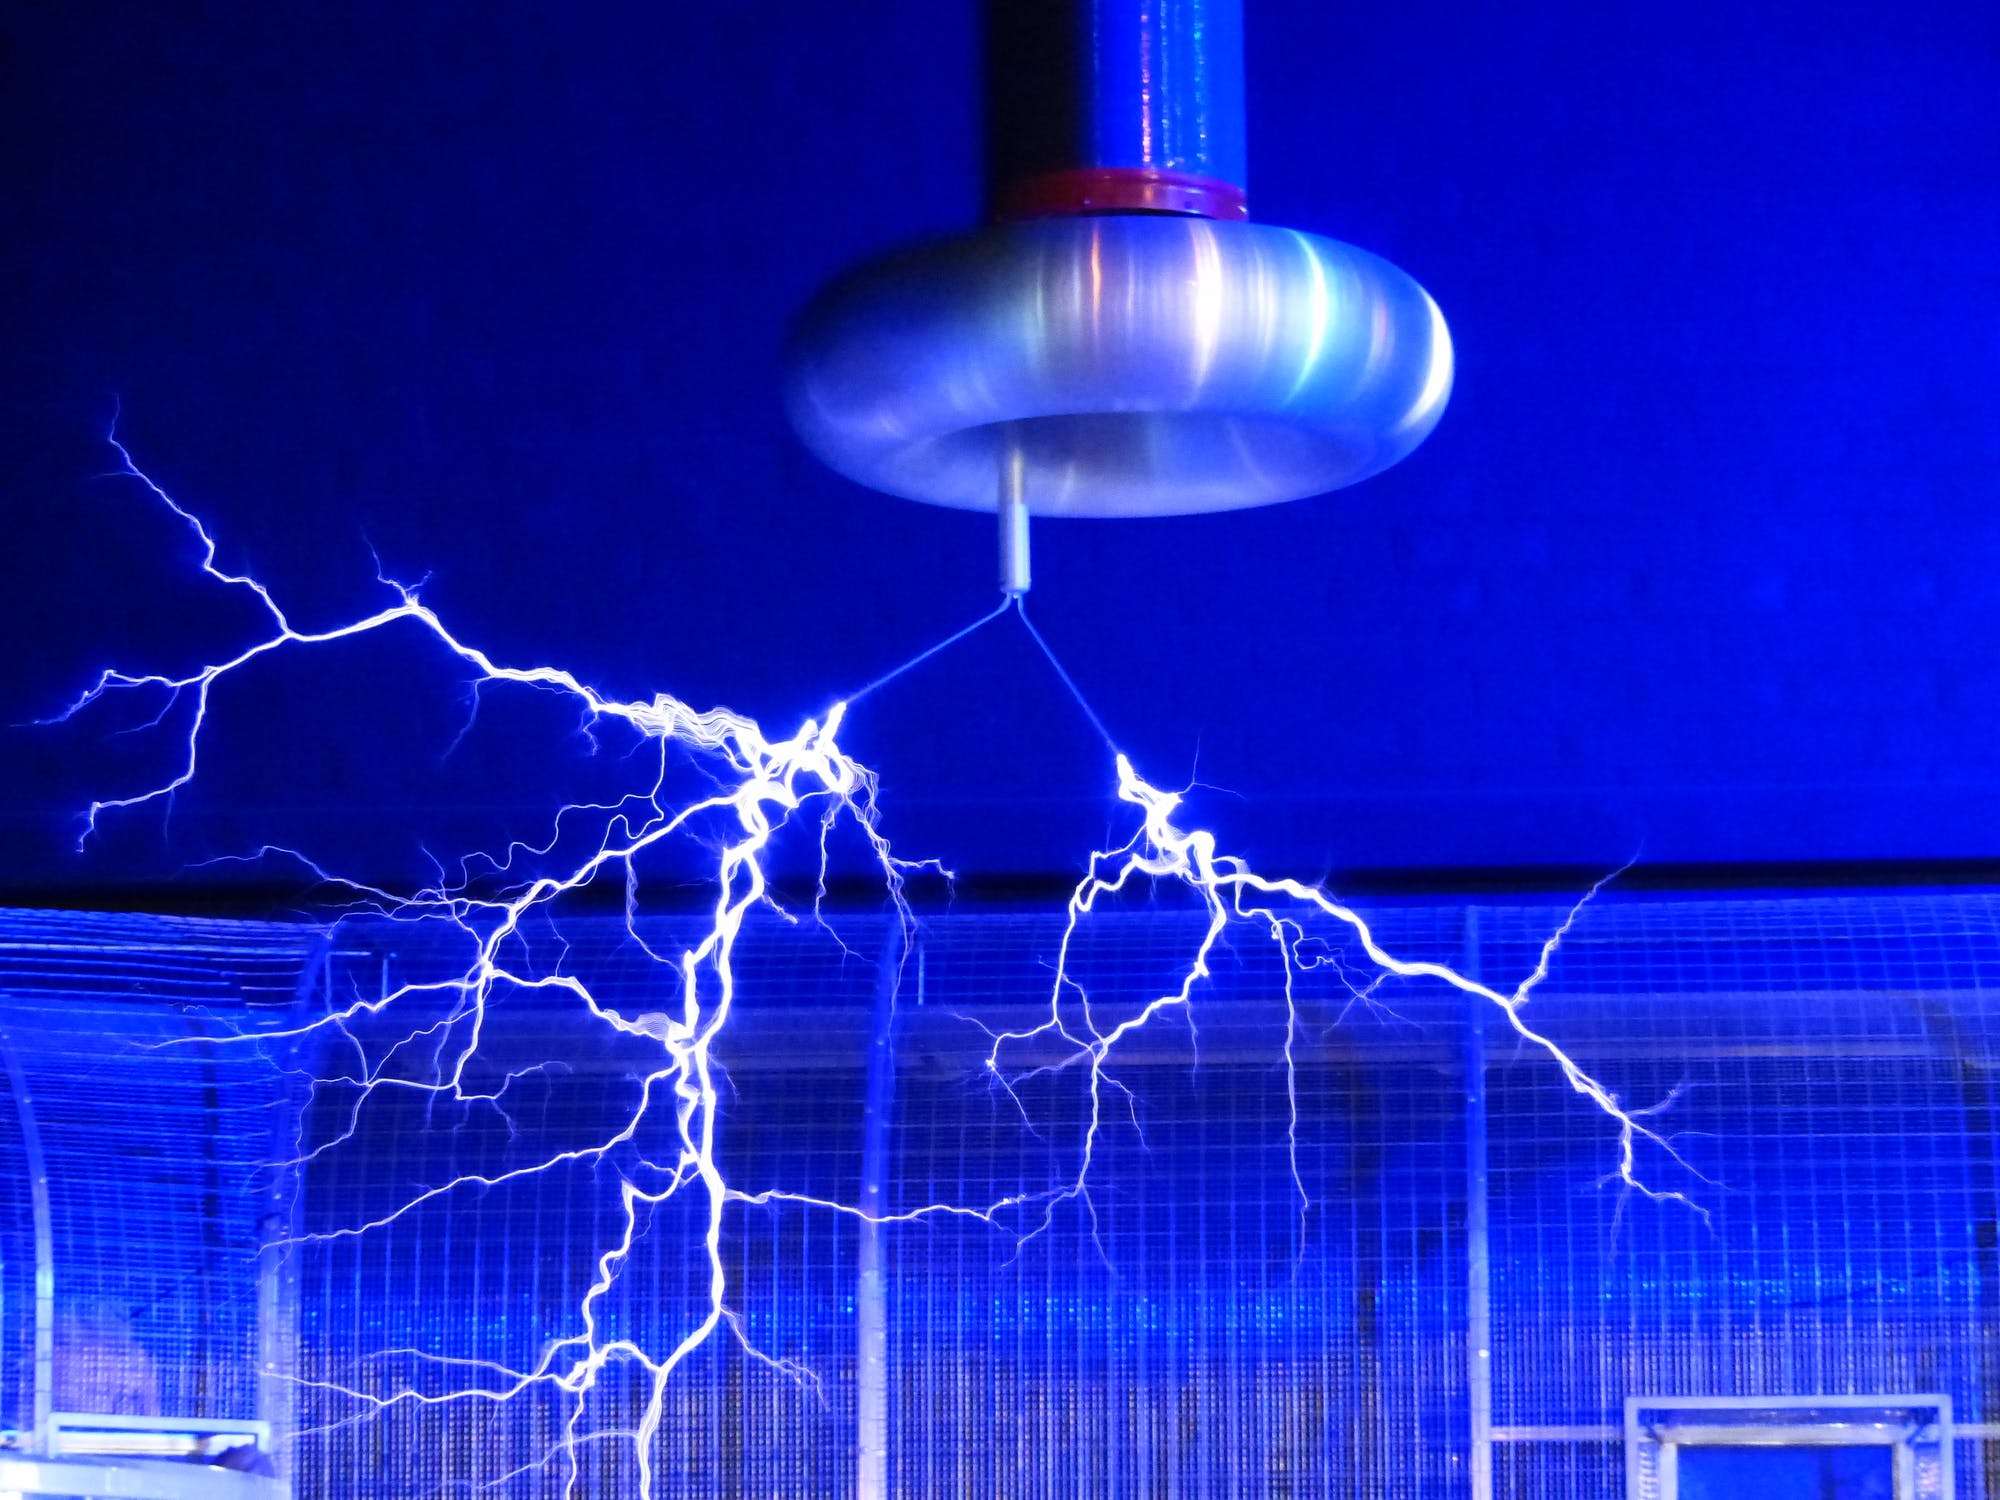 Blue electric sparks being produced by a Tesla coil.